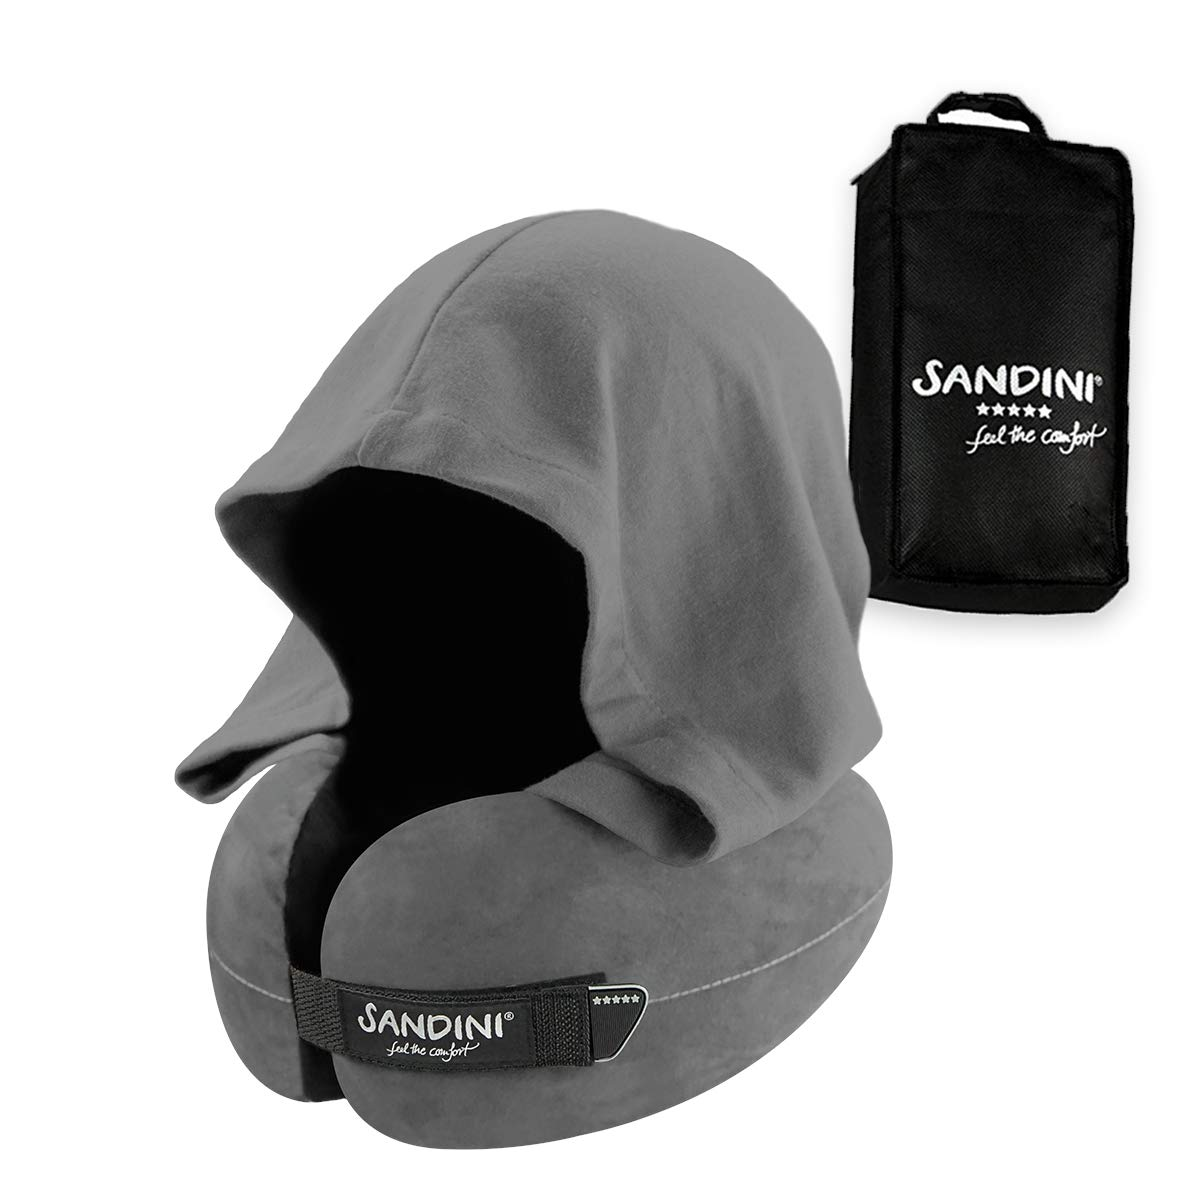 SANDINI TravelFix Hoodie - Premium Ergonomic Travel Pillow from Germany - Real Support for The Head and Neck - Hood for Darkening and Privacy - Machine Washable by SANDINI